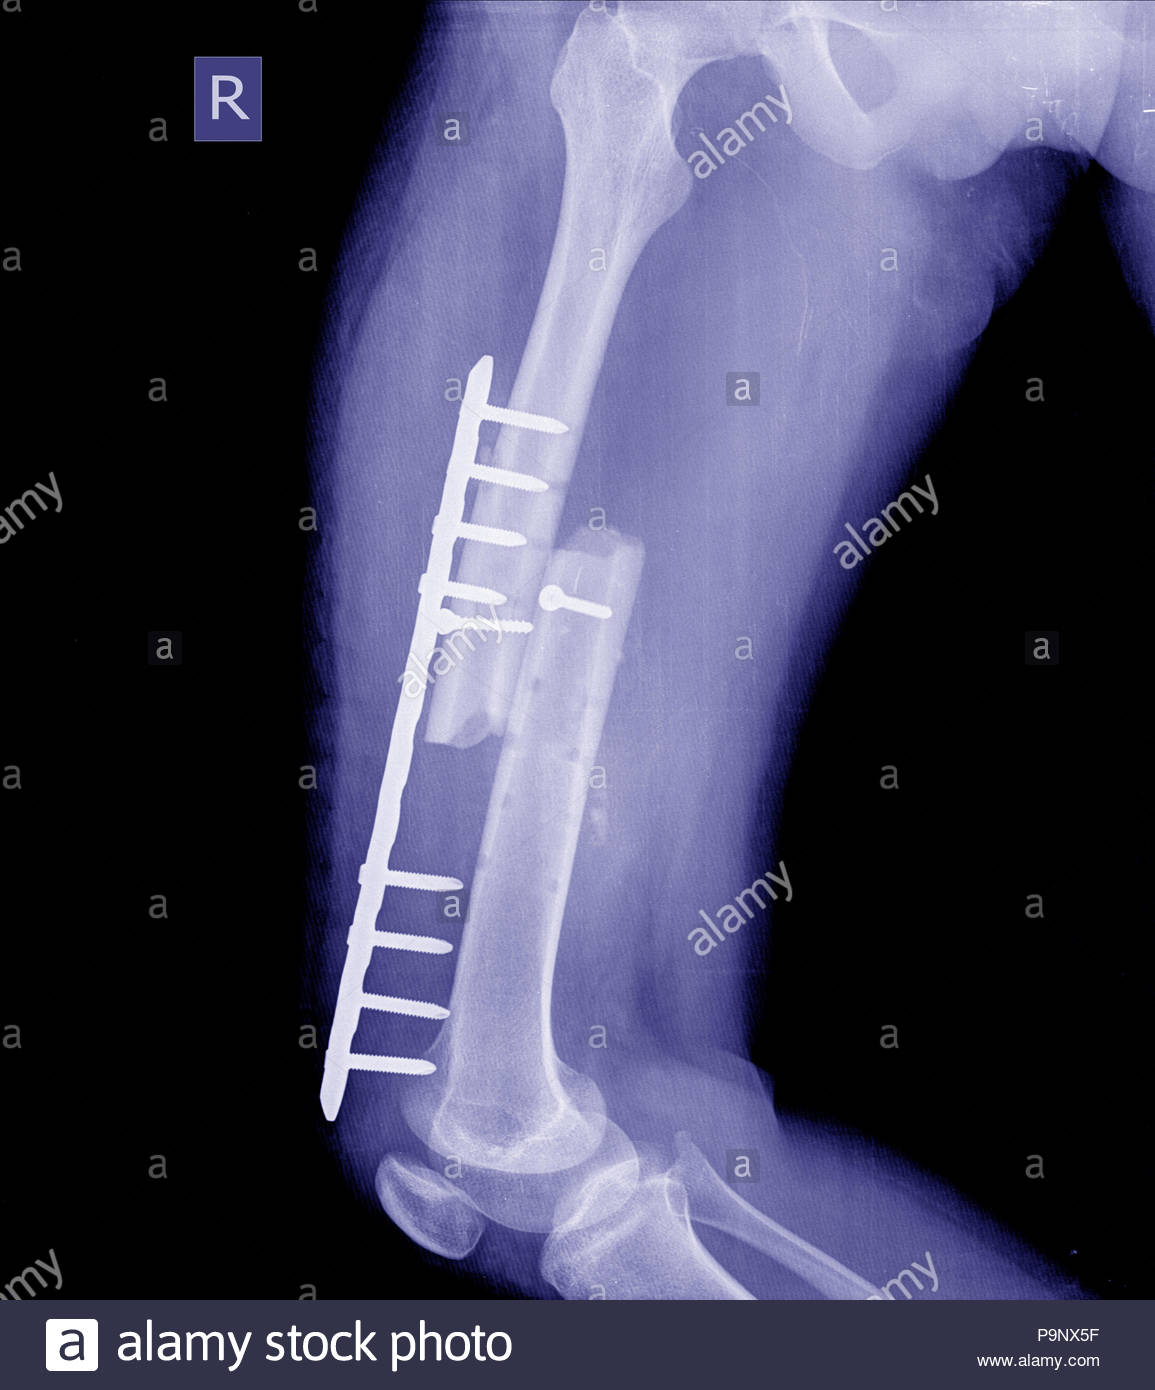 Femoral Neck Fracture Stock Photos & Femoral Neck Fracture